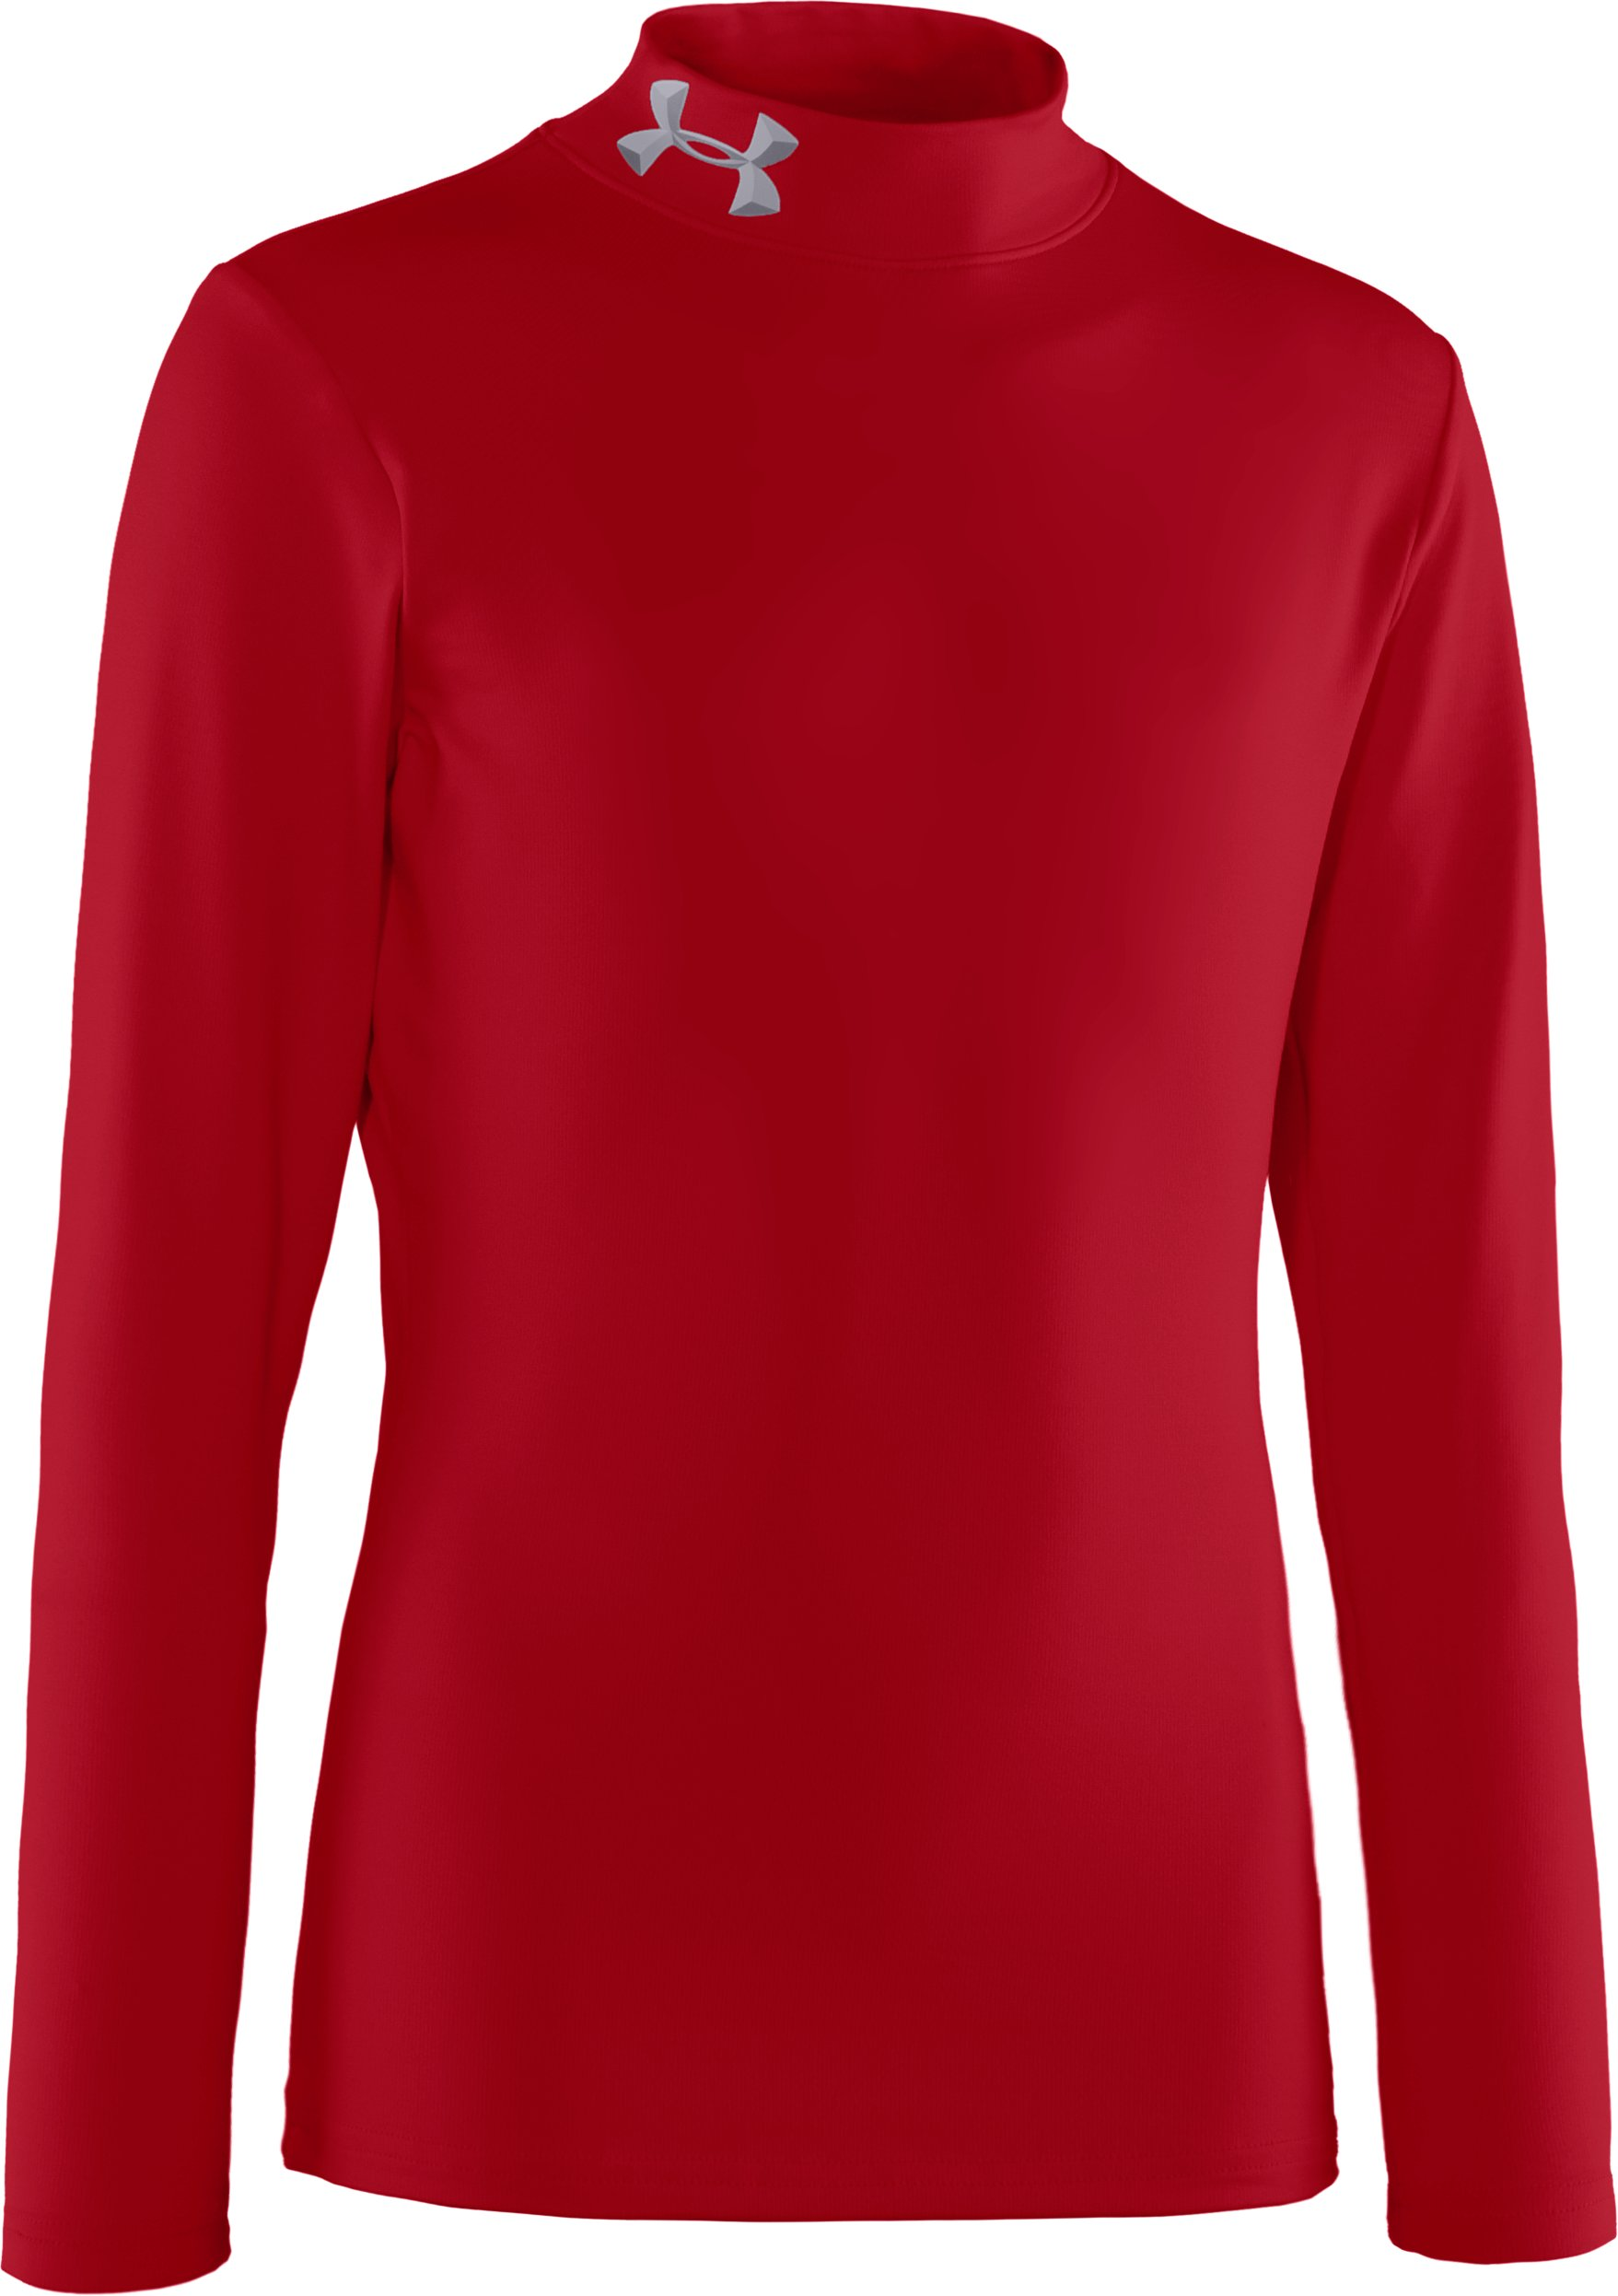 Boys' ColdGear® Evo Fitted Baselayer Mock, Red, zoomed image